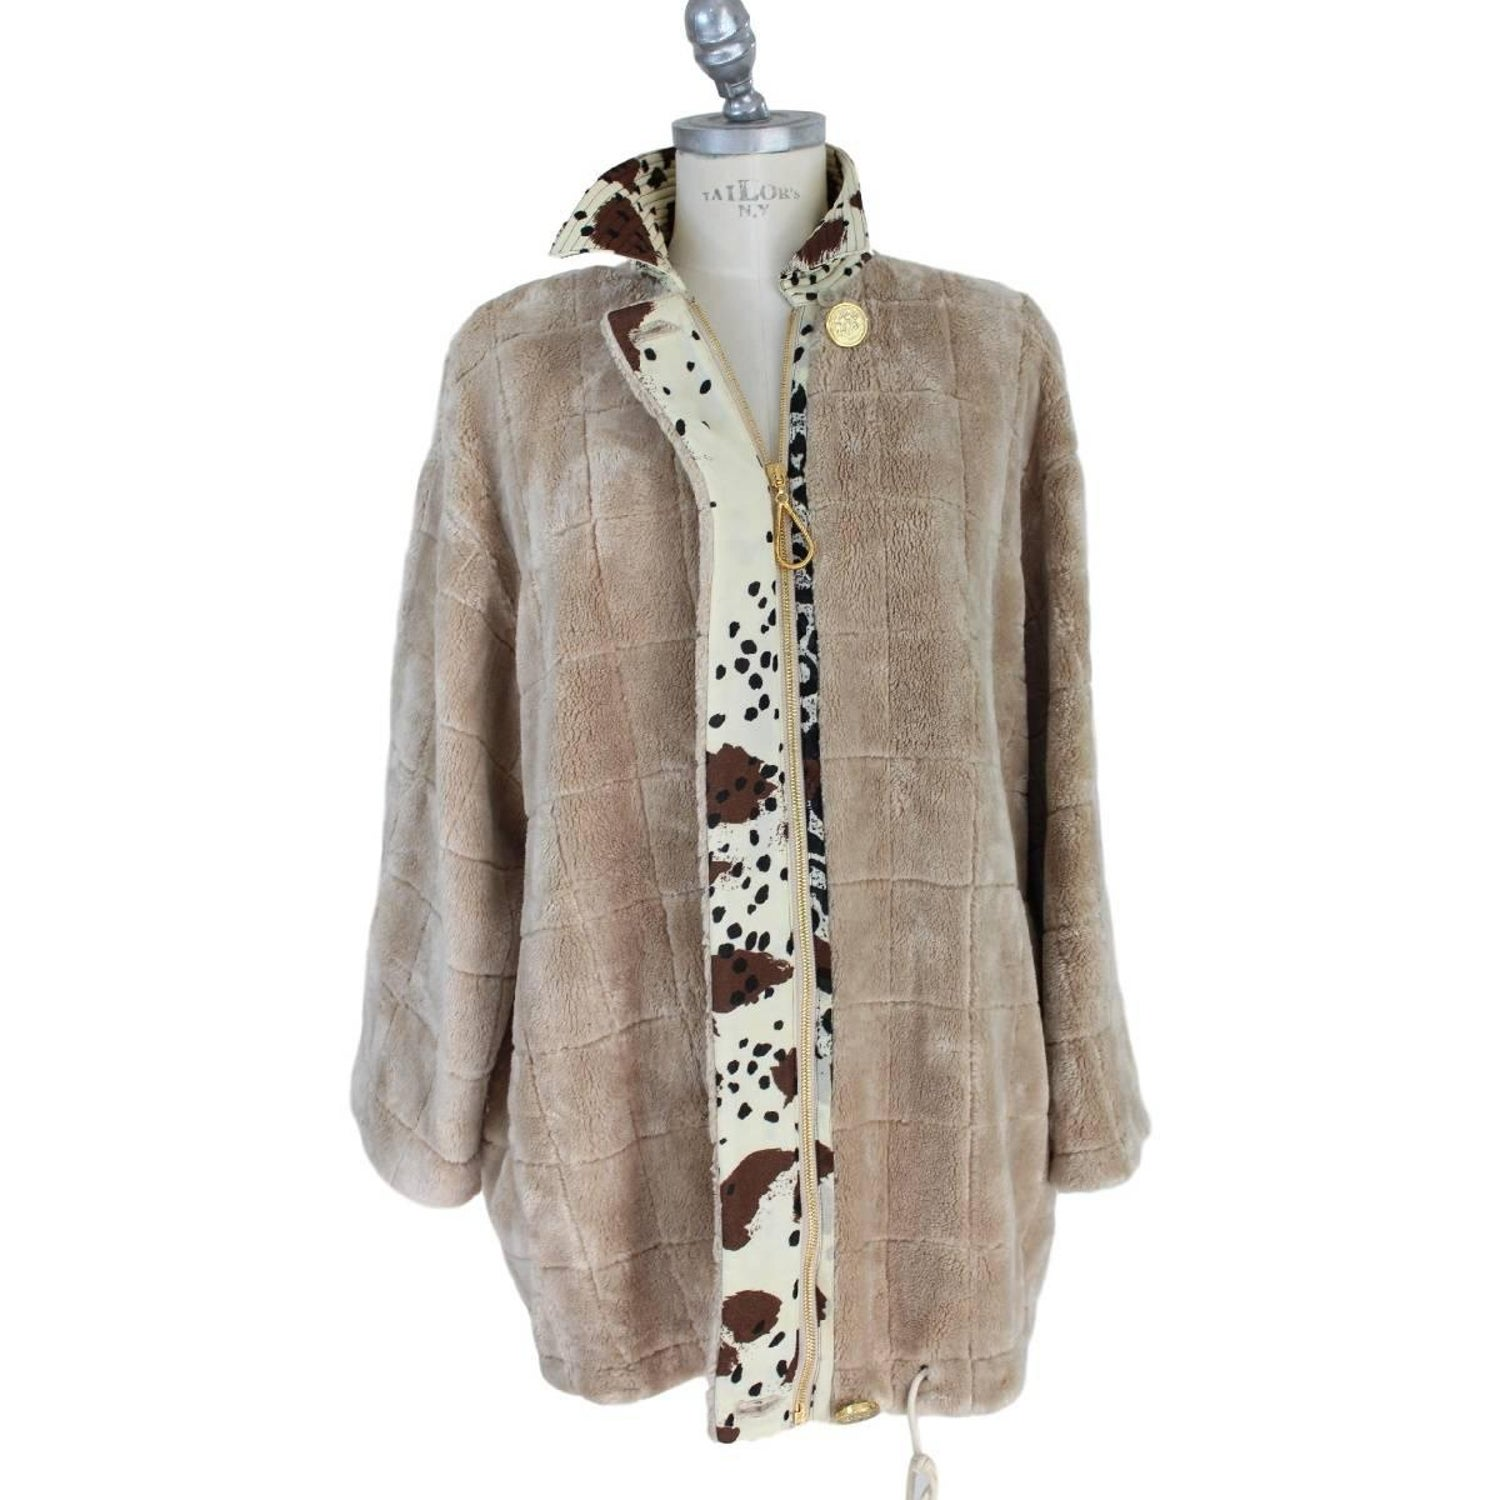 Vintage faux fur jacket, nude women gettig spanked